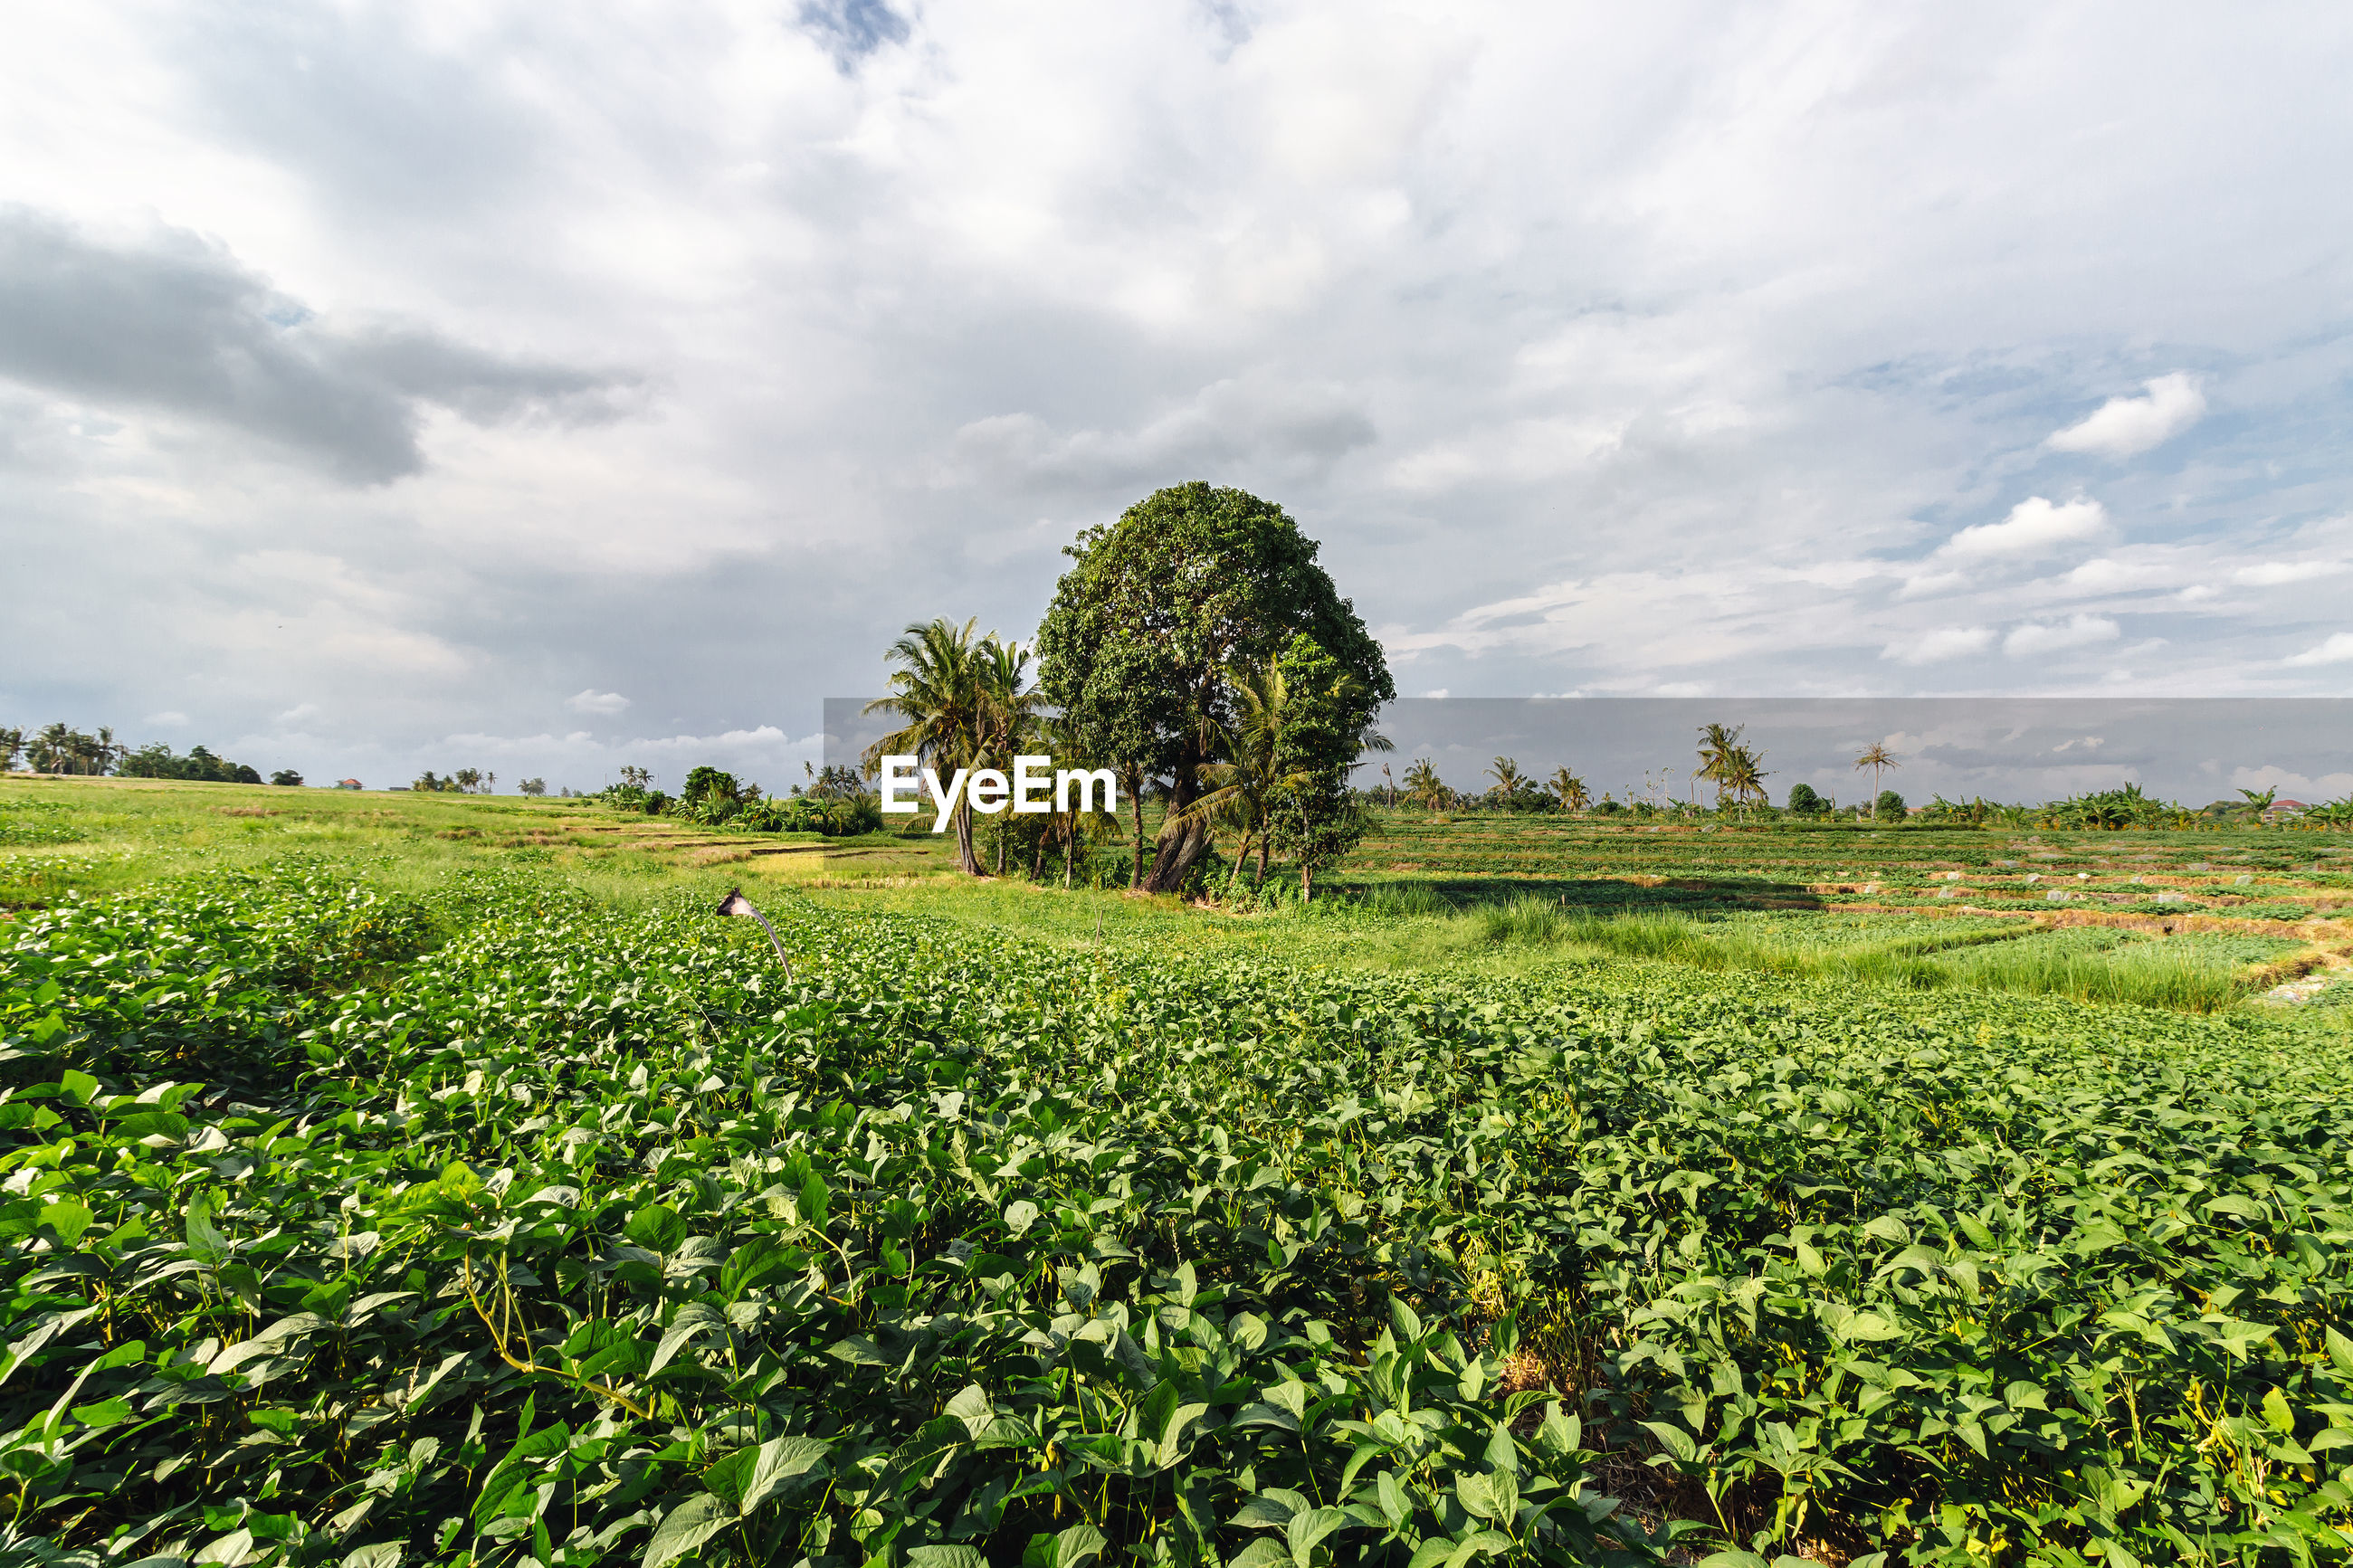 SCENIC VIEW OF FARM AGAINST SKY